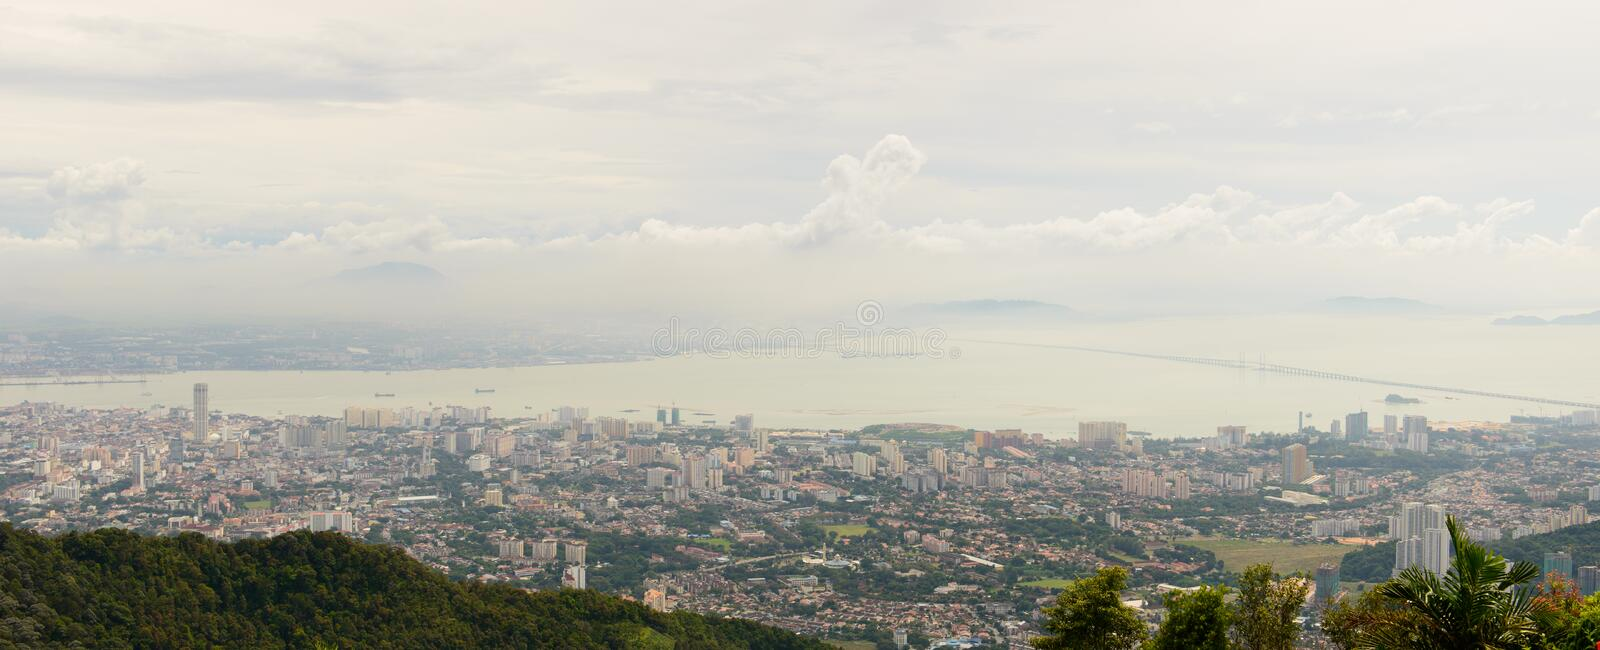 Download Penang city landscape stock image. Image of asia, city - 28408735